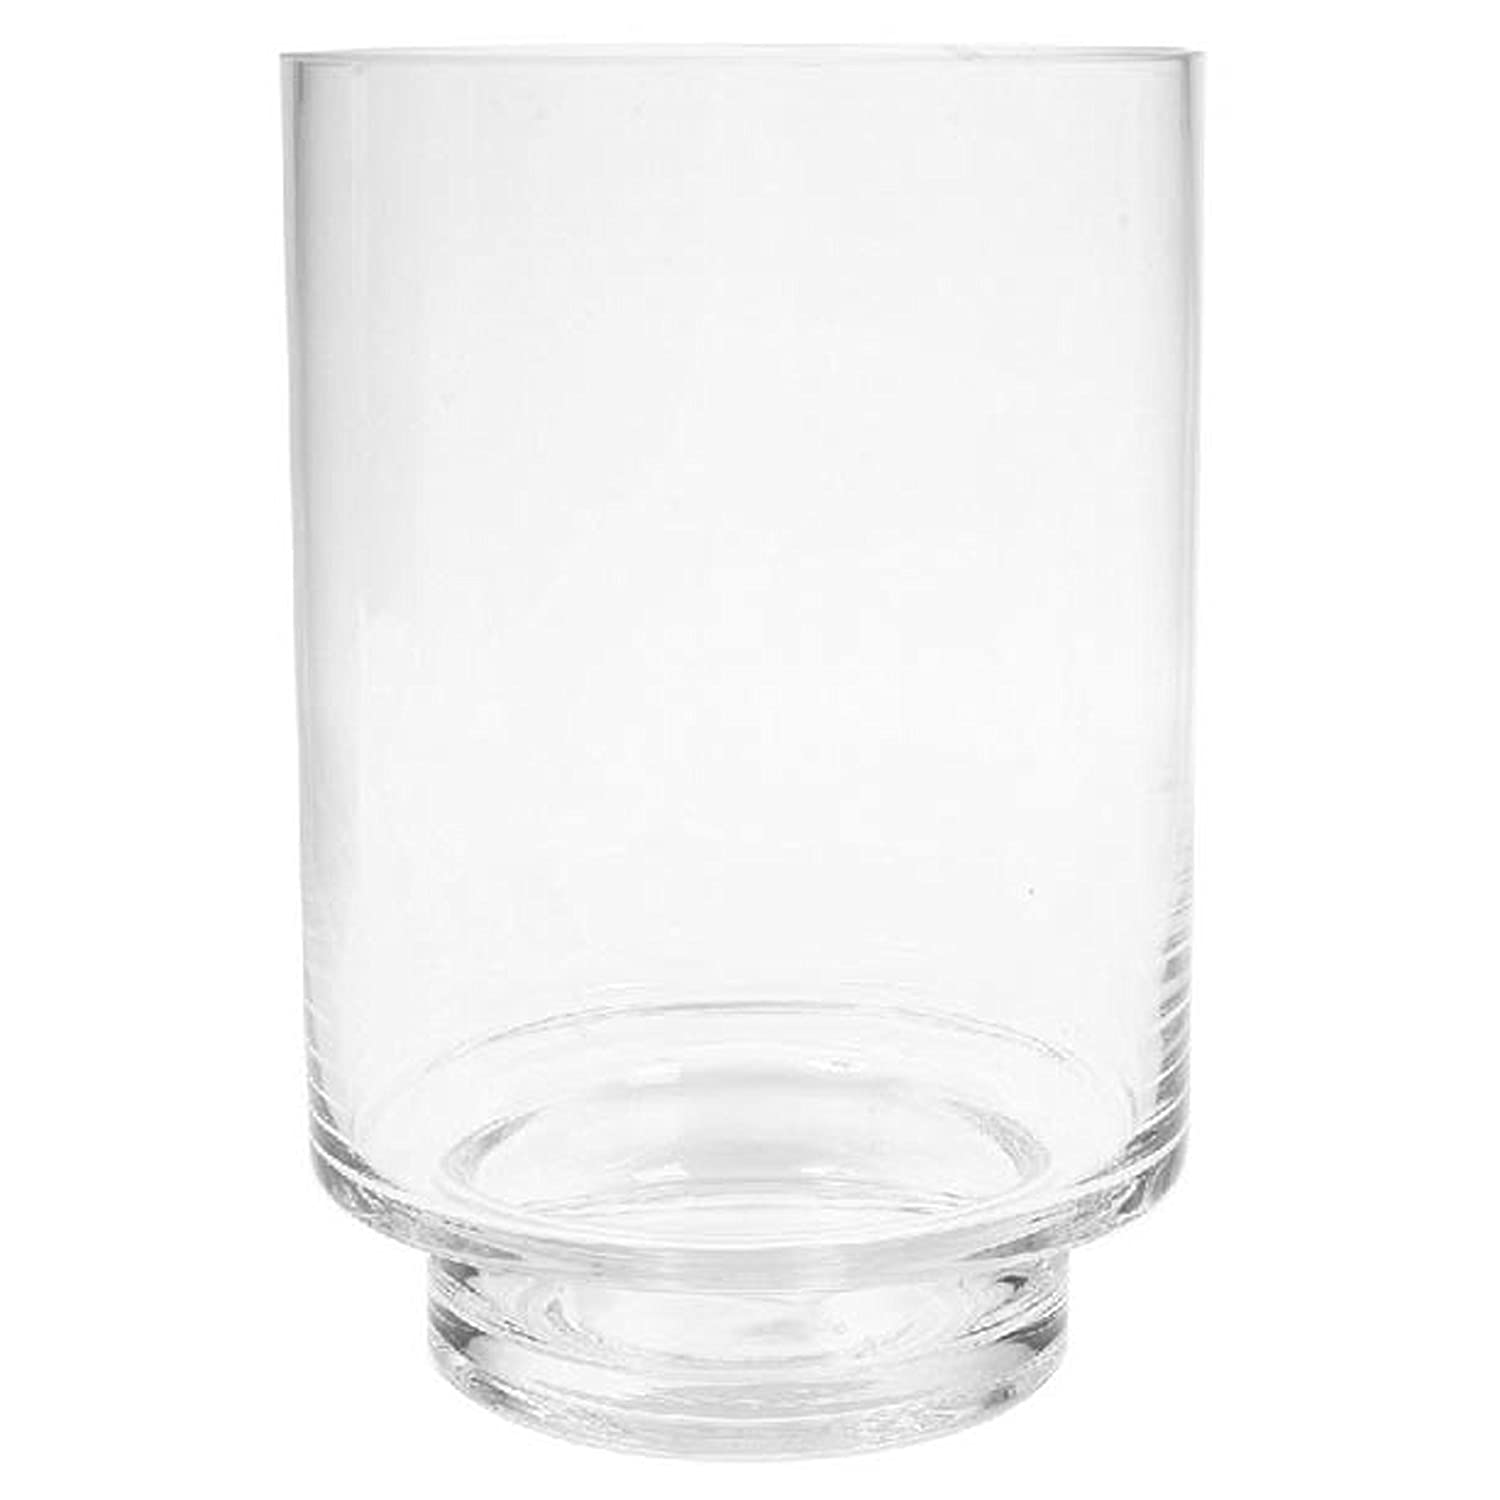 Hosley's 7.5 High, Glass Pillar/Votive Candle Holder. Ideal Gift for Weddings, House Warming, Home Office, Spa, Votive/Pillar Candle Garden. P1 Hosley' s 7.5 High HG Global